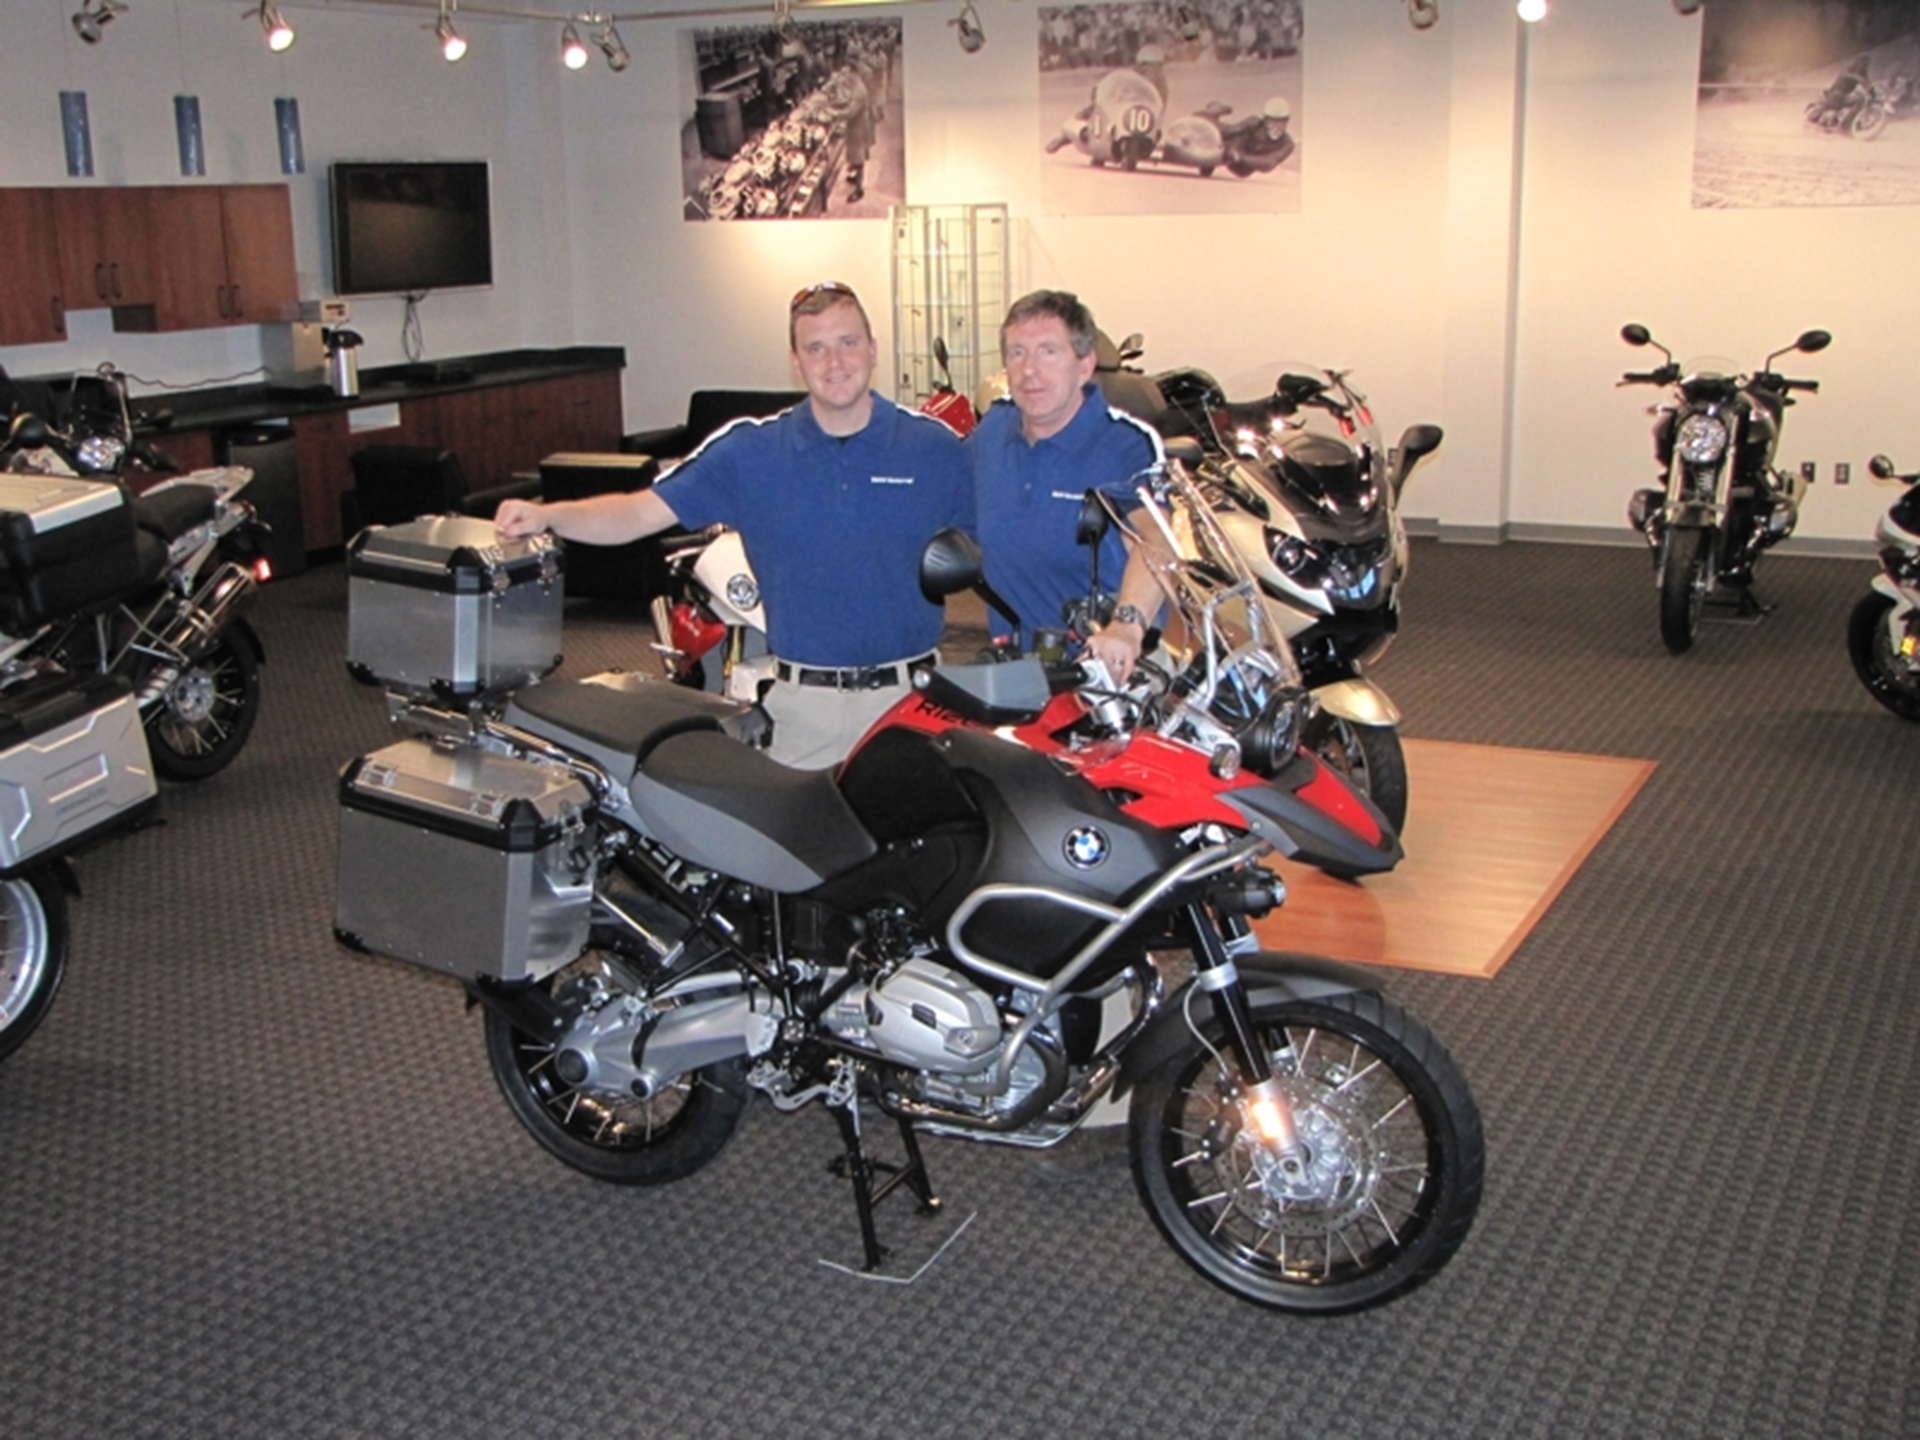 BMW Motorcycles Dealership Of Roanoke Valley